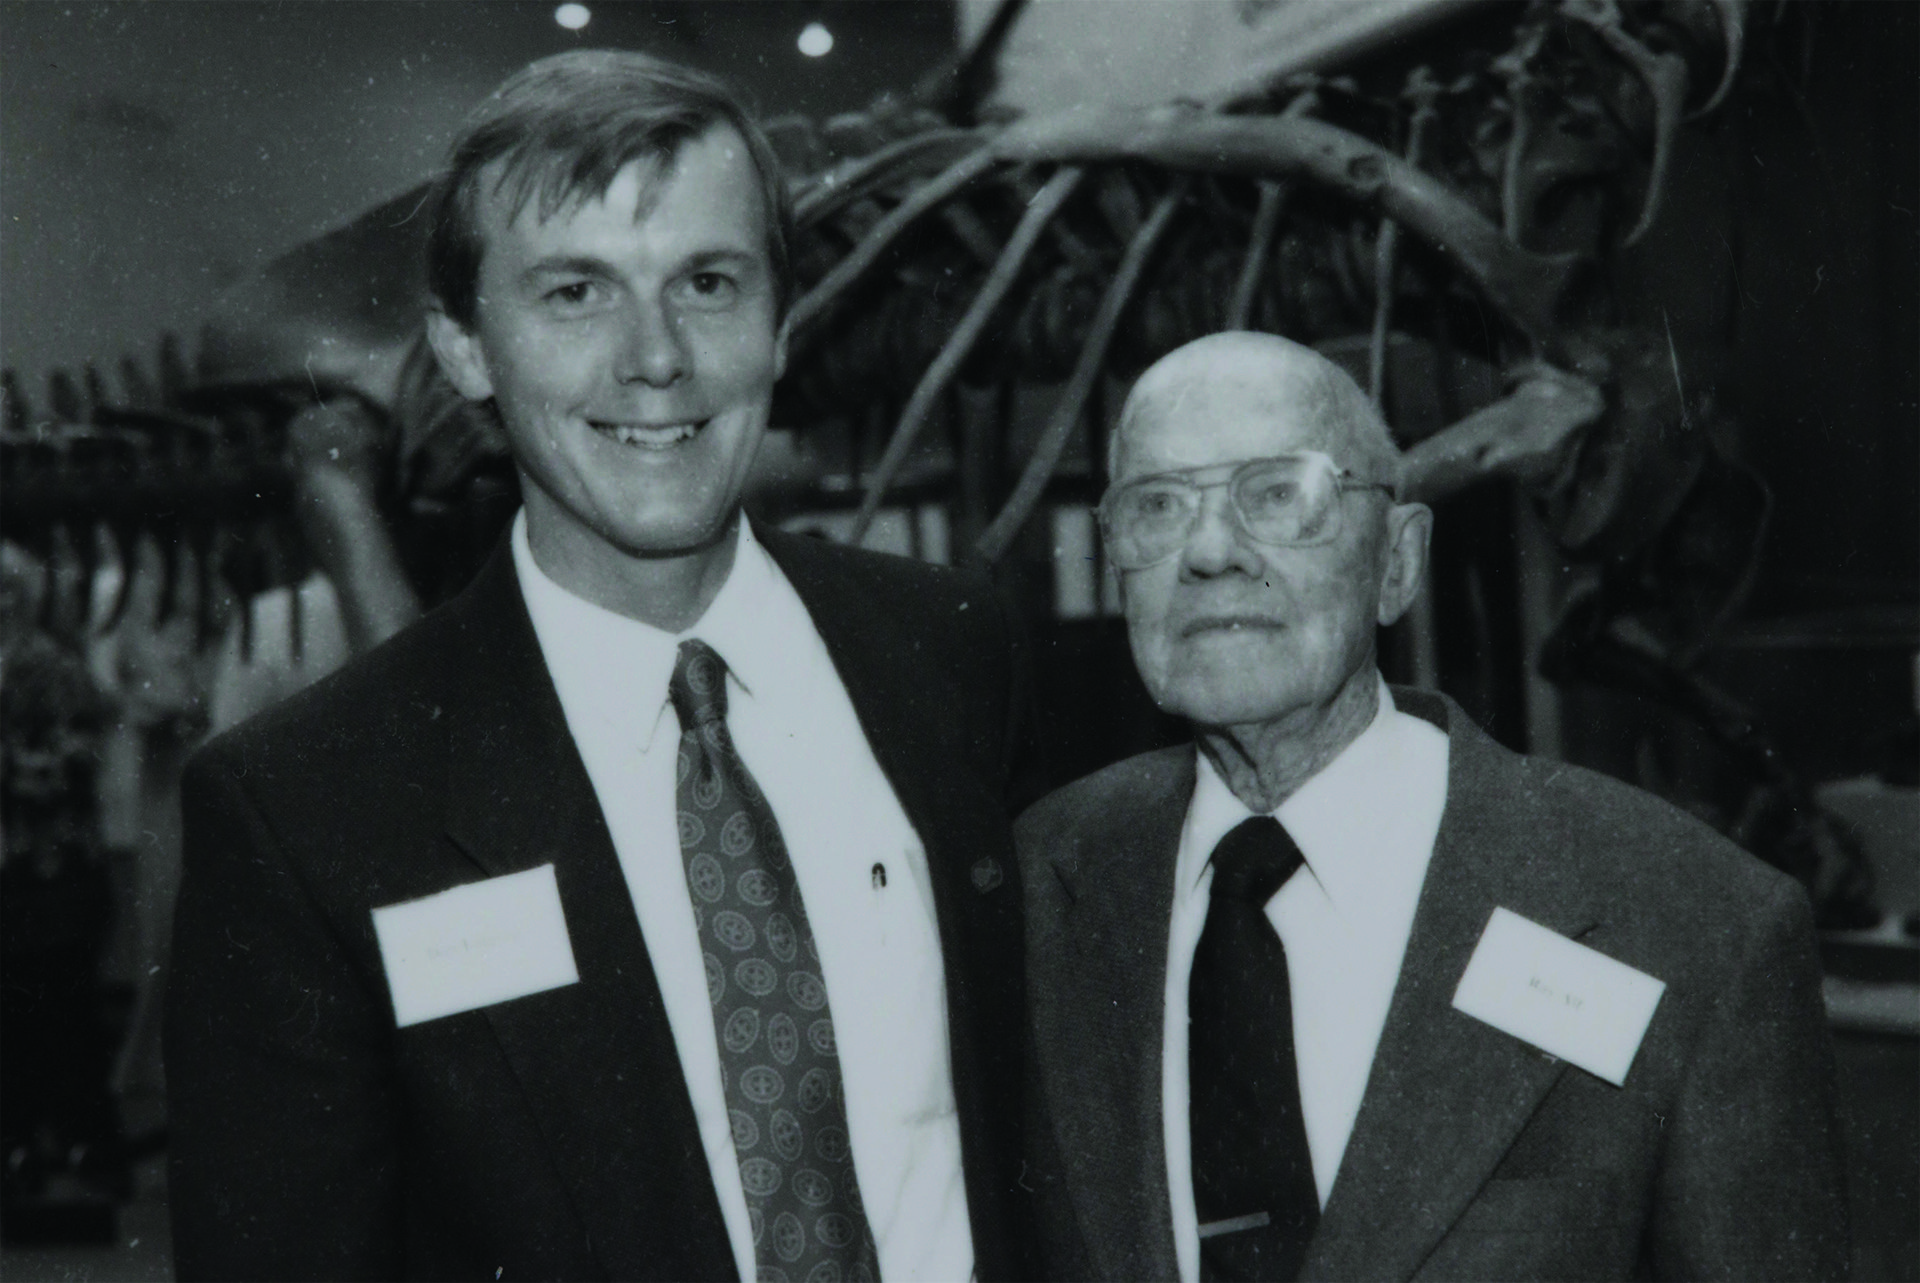 Don Lofgren and Ray Alf at the 1st Peccary Dinner in 1993